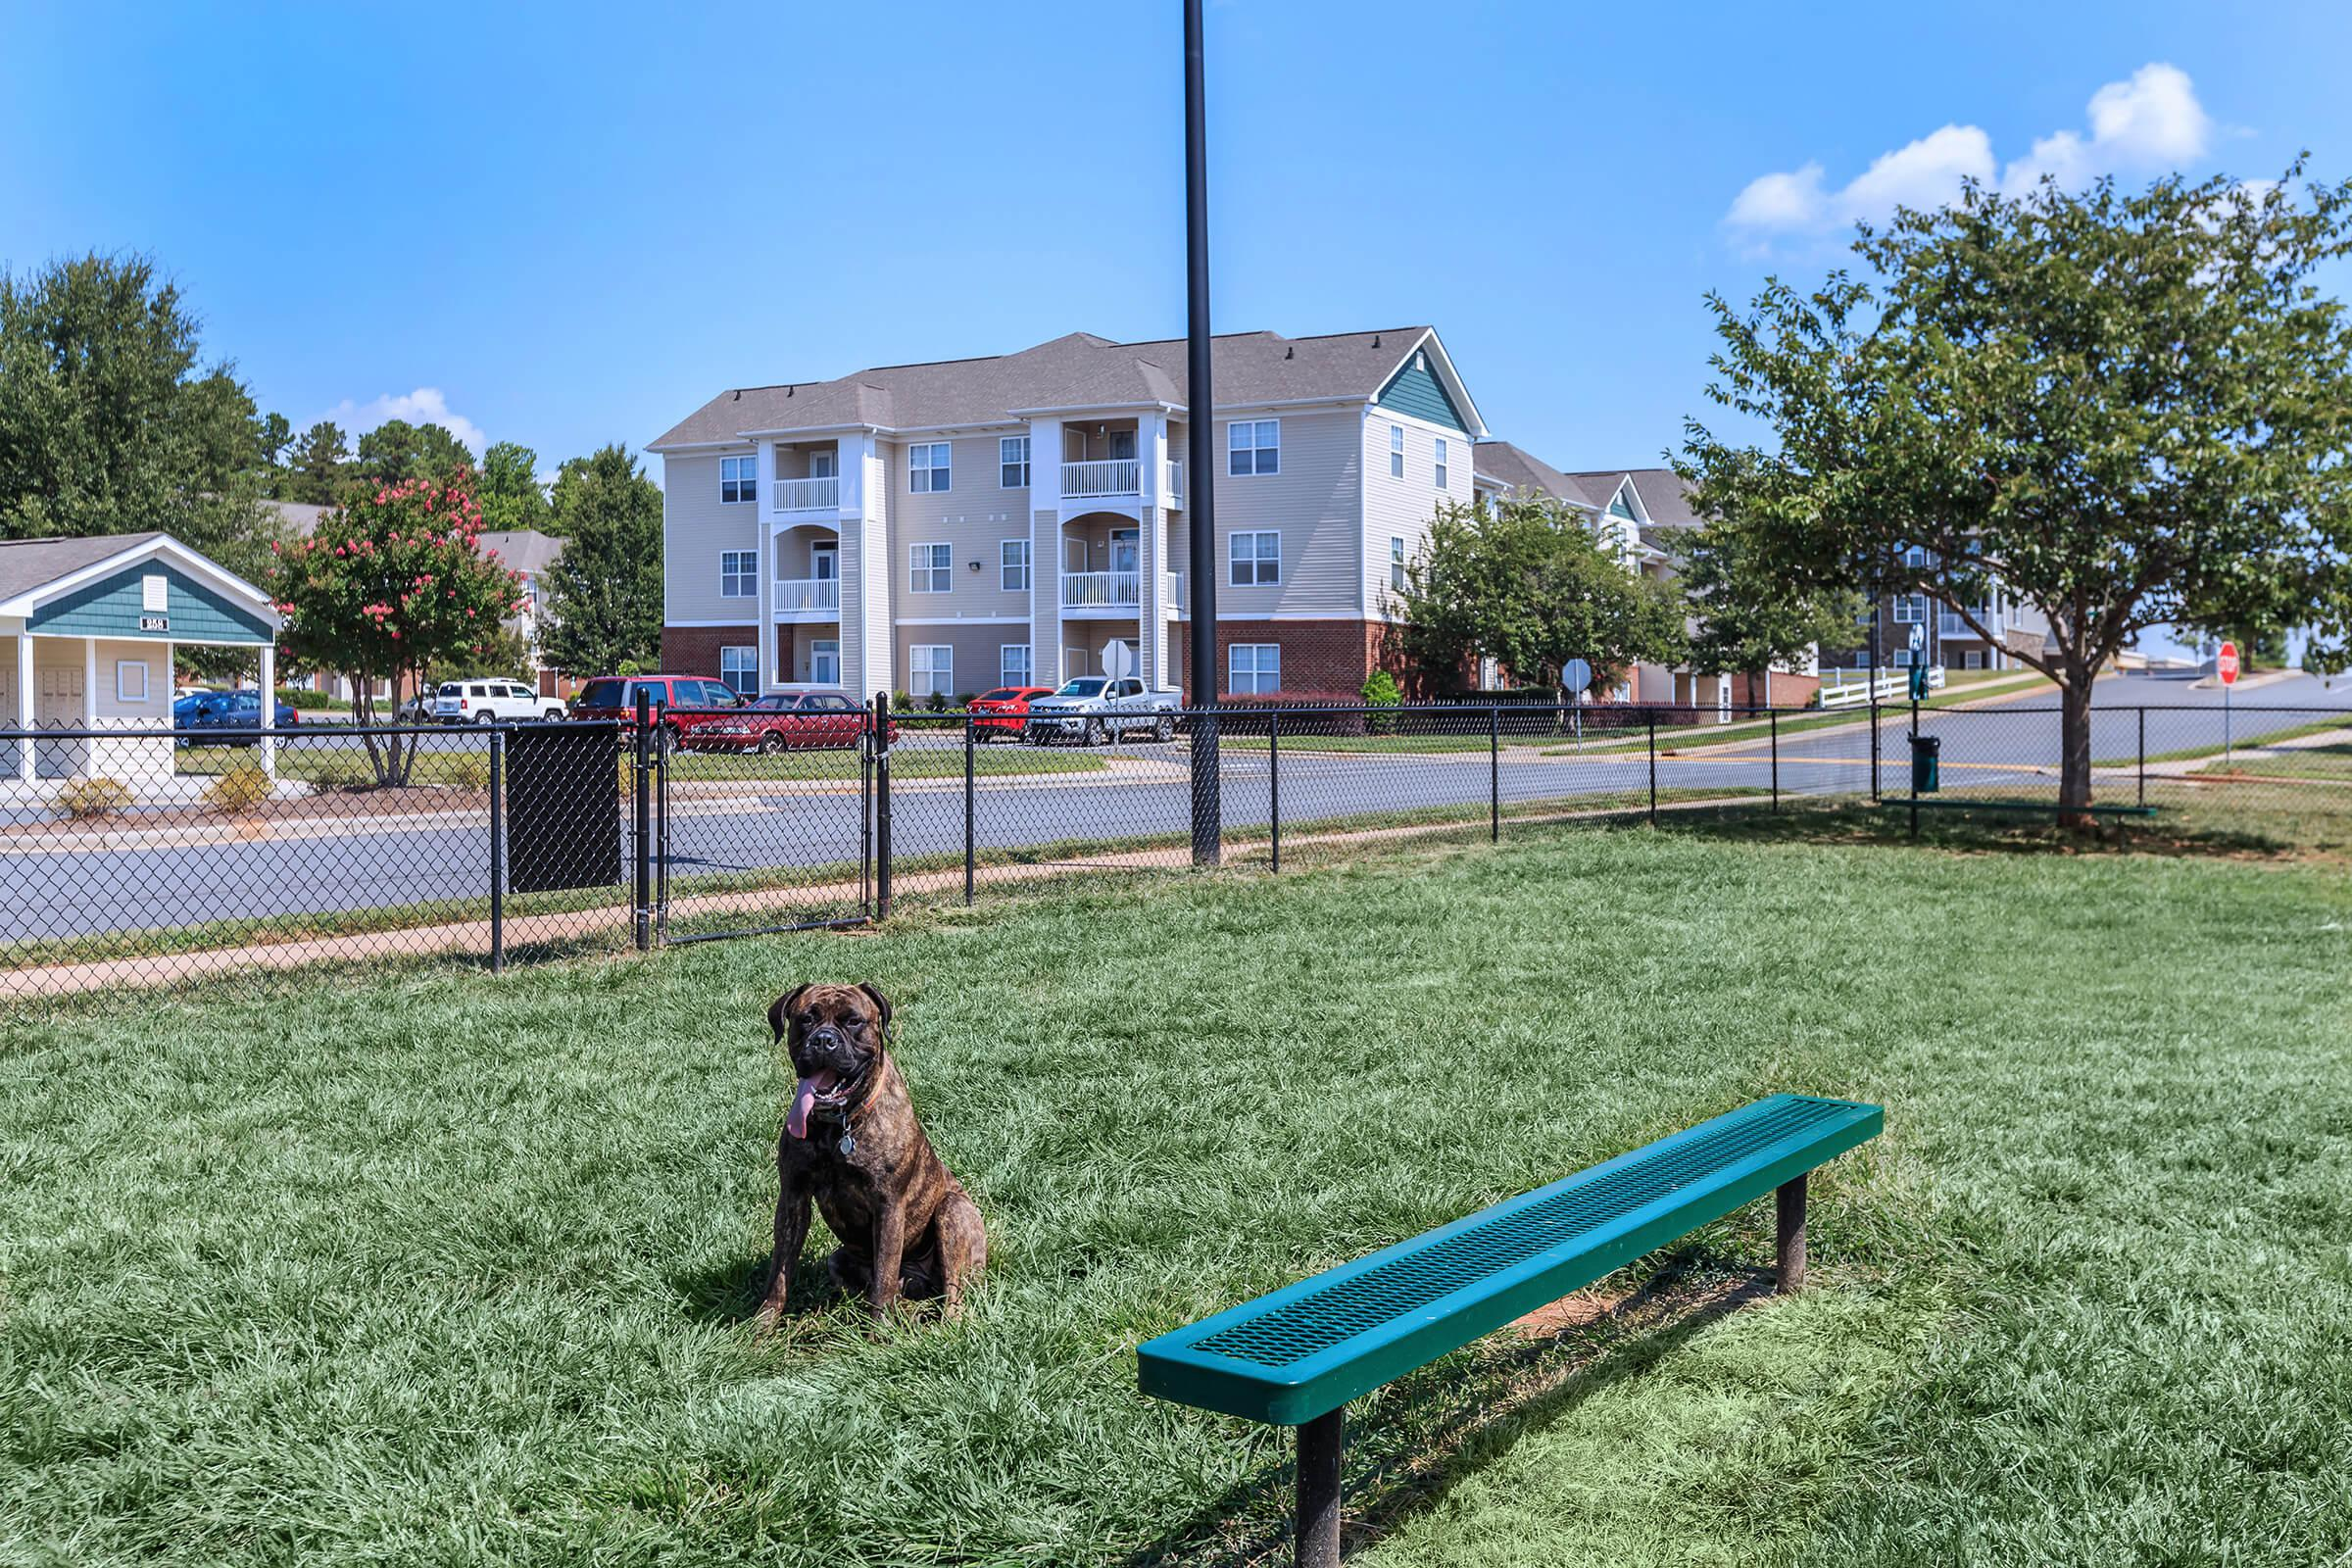 a dog sitting on a bench in front of a building